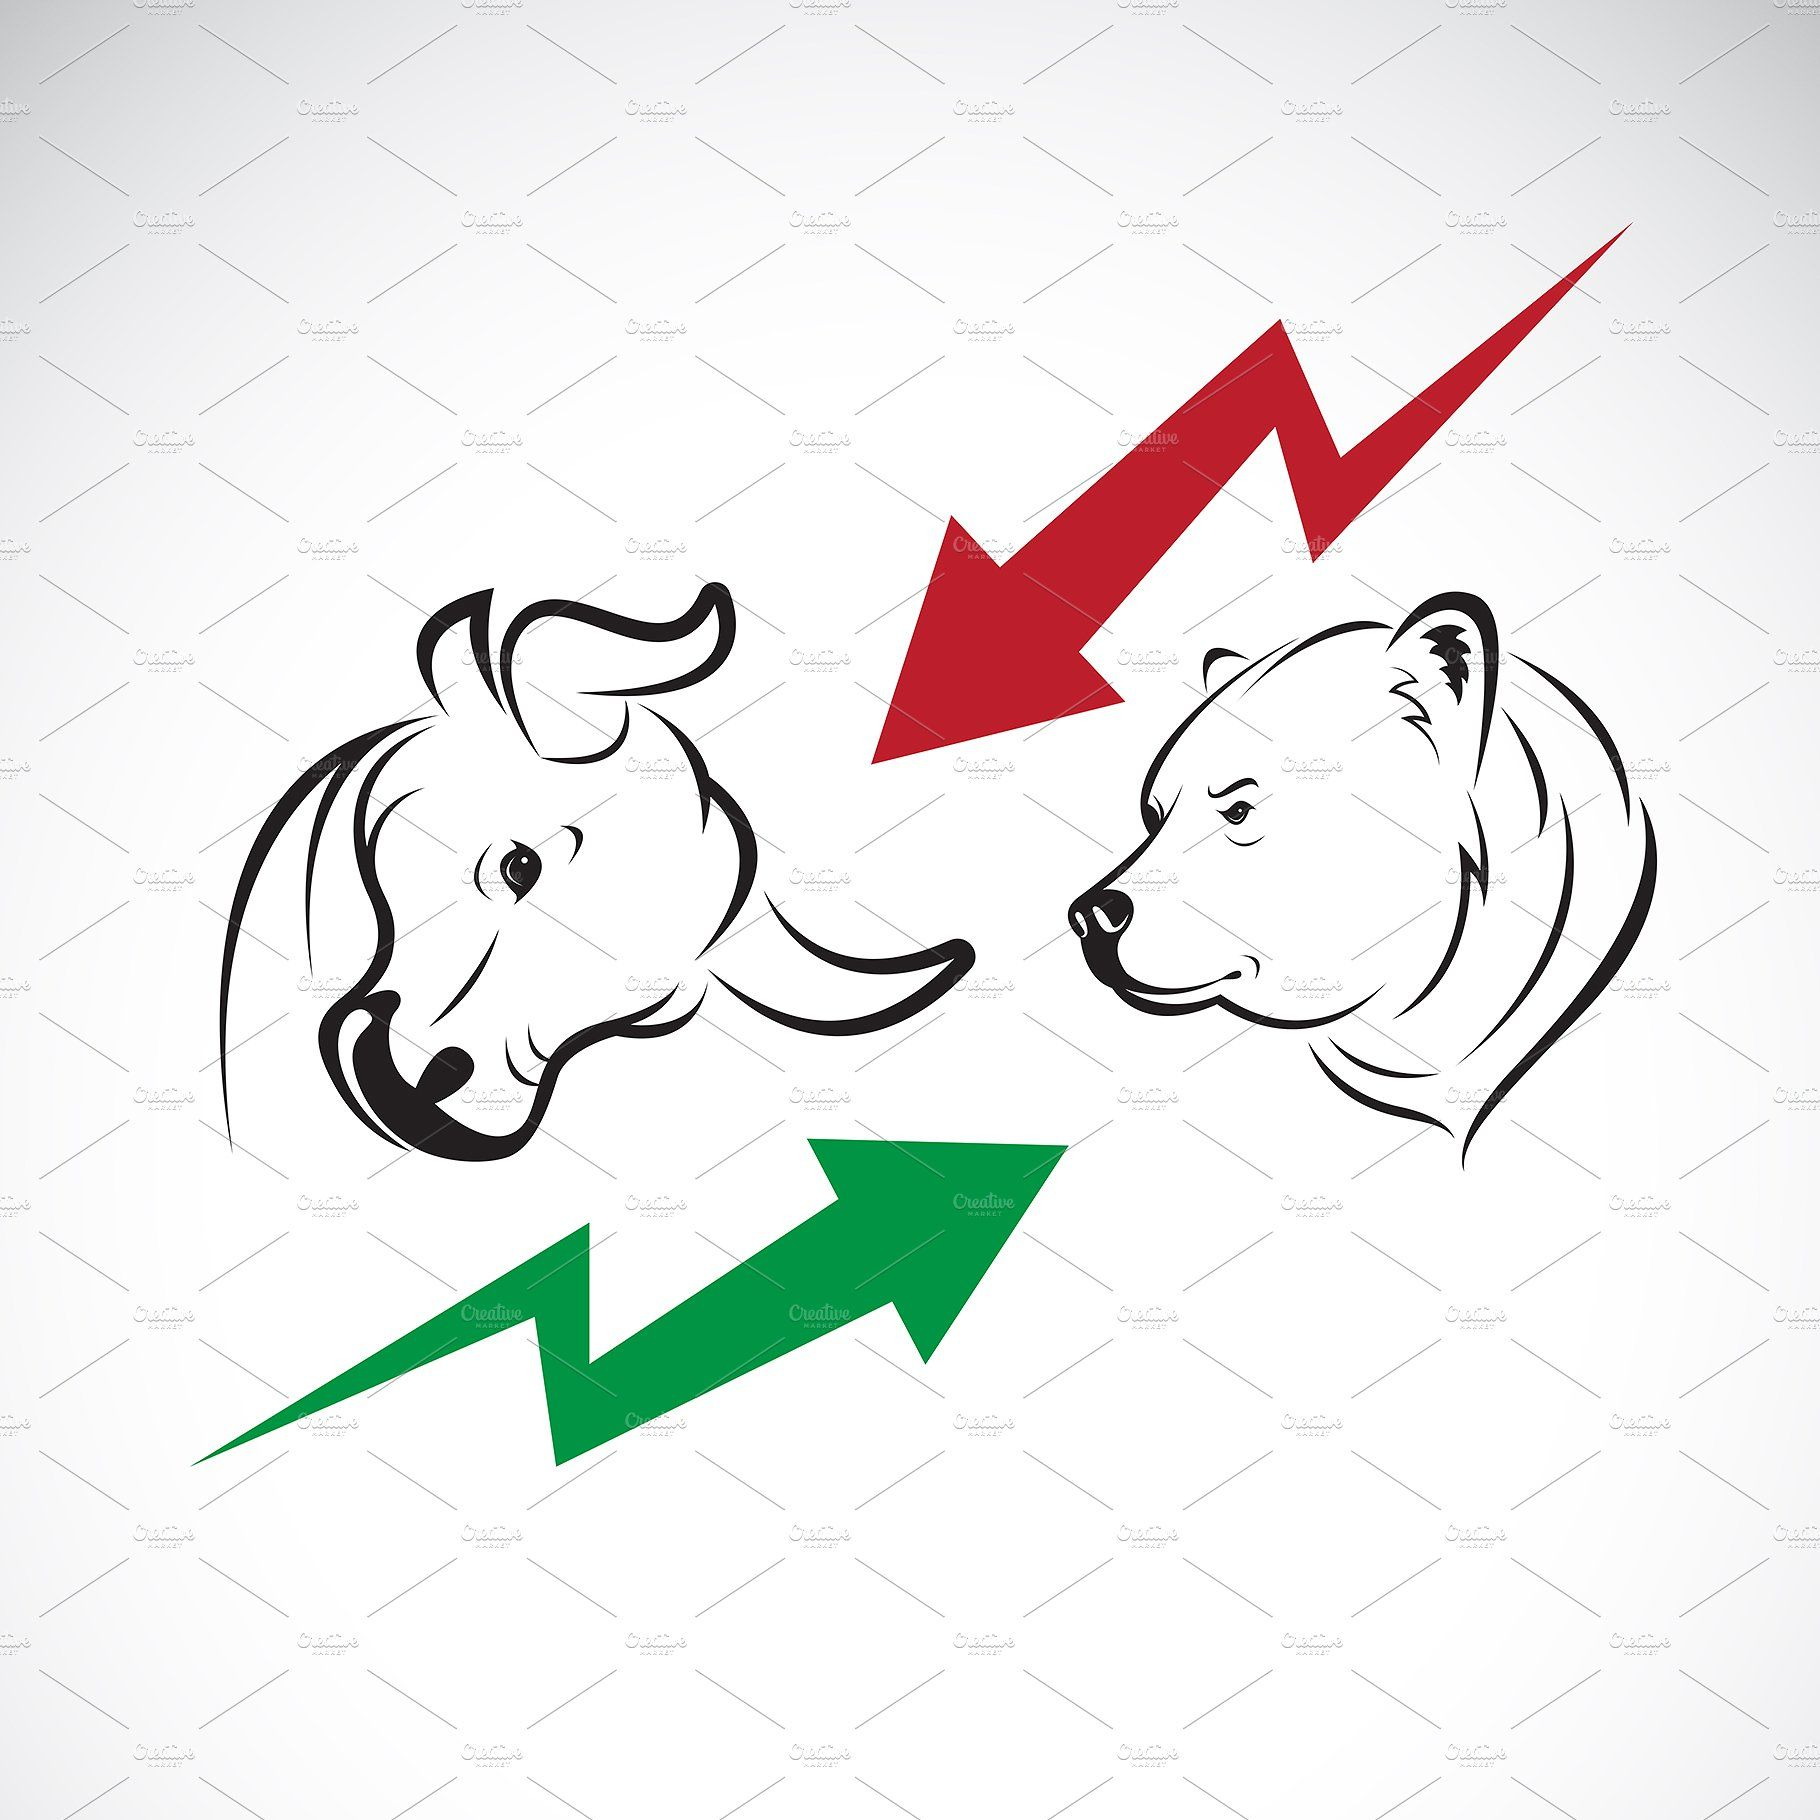 Bull And Bear Symbols Of Stock Marke Bull Stock Market Trends Symbols